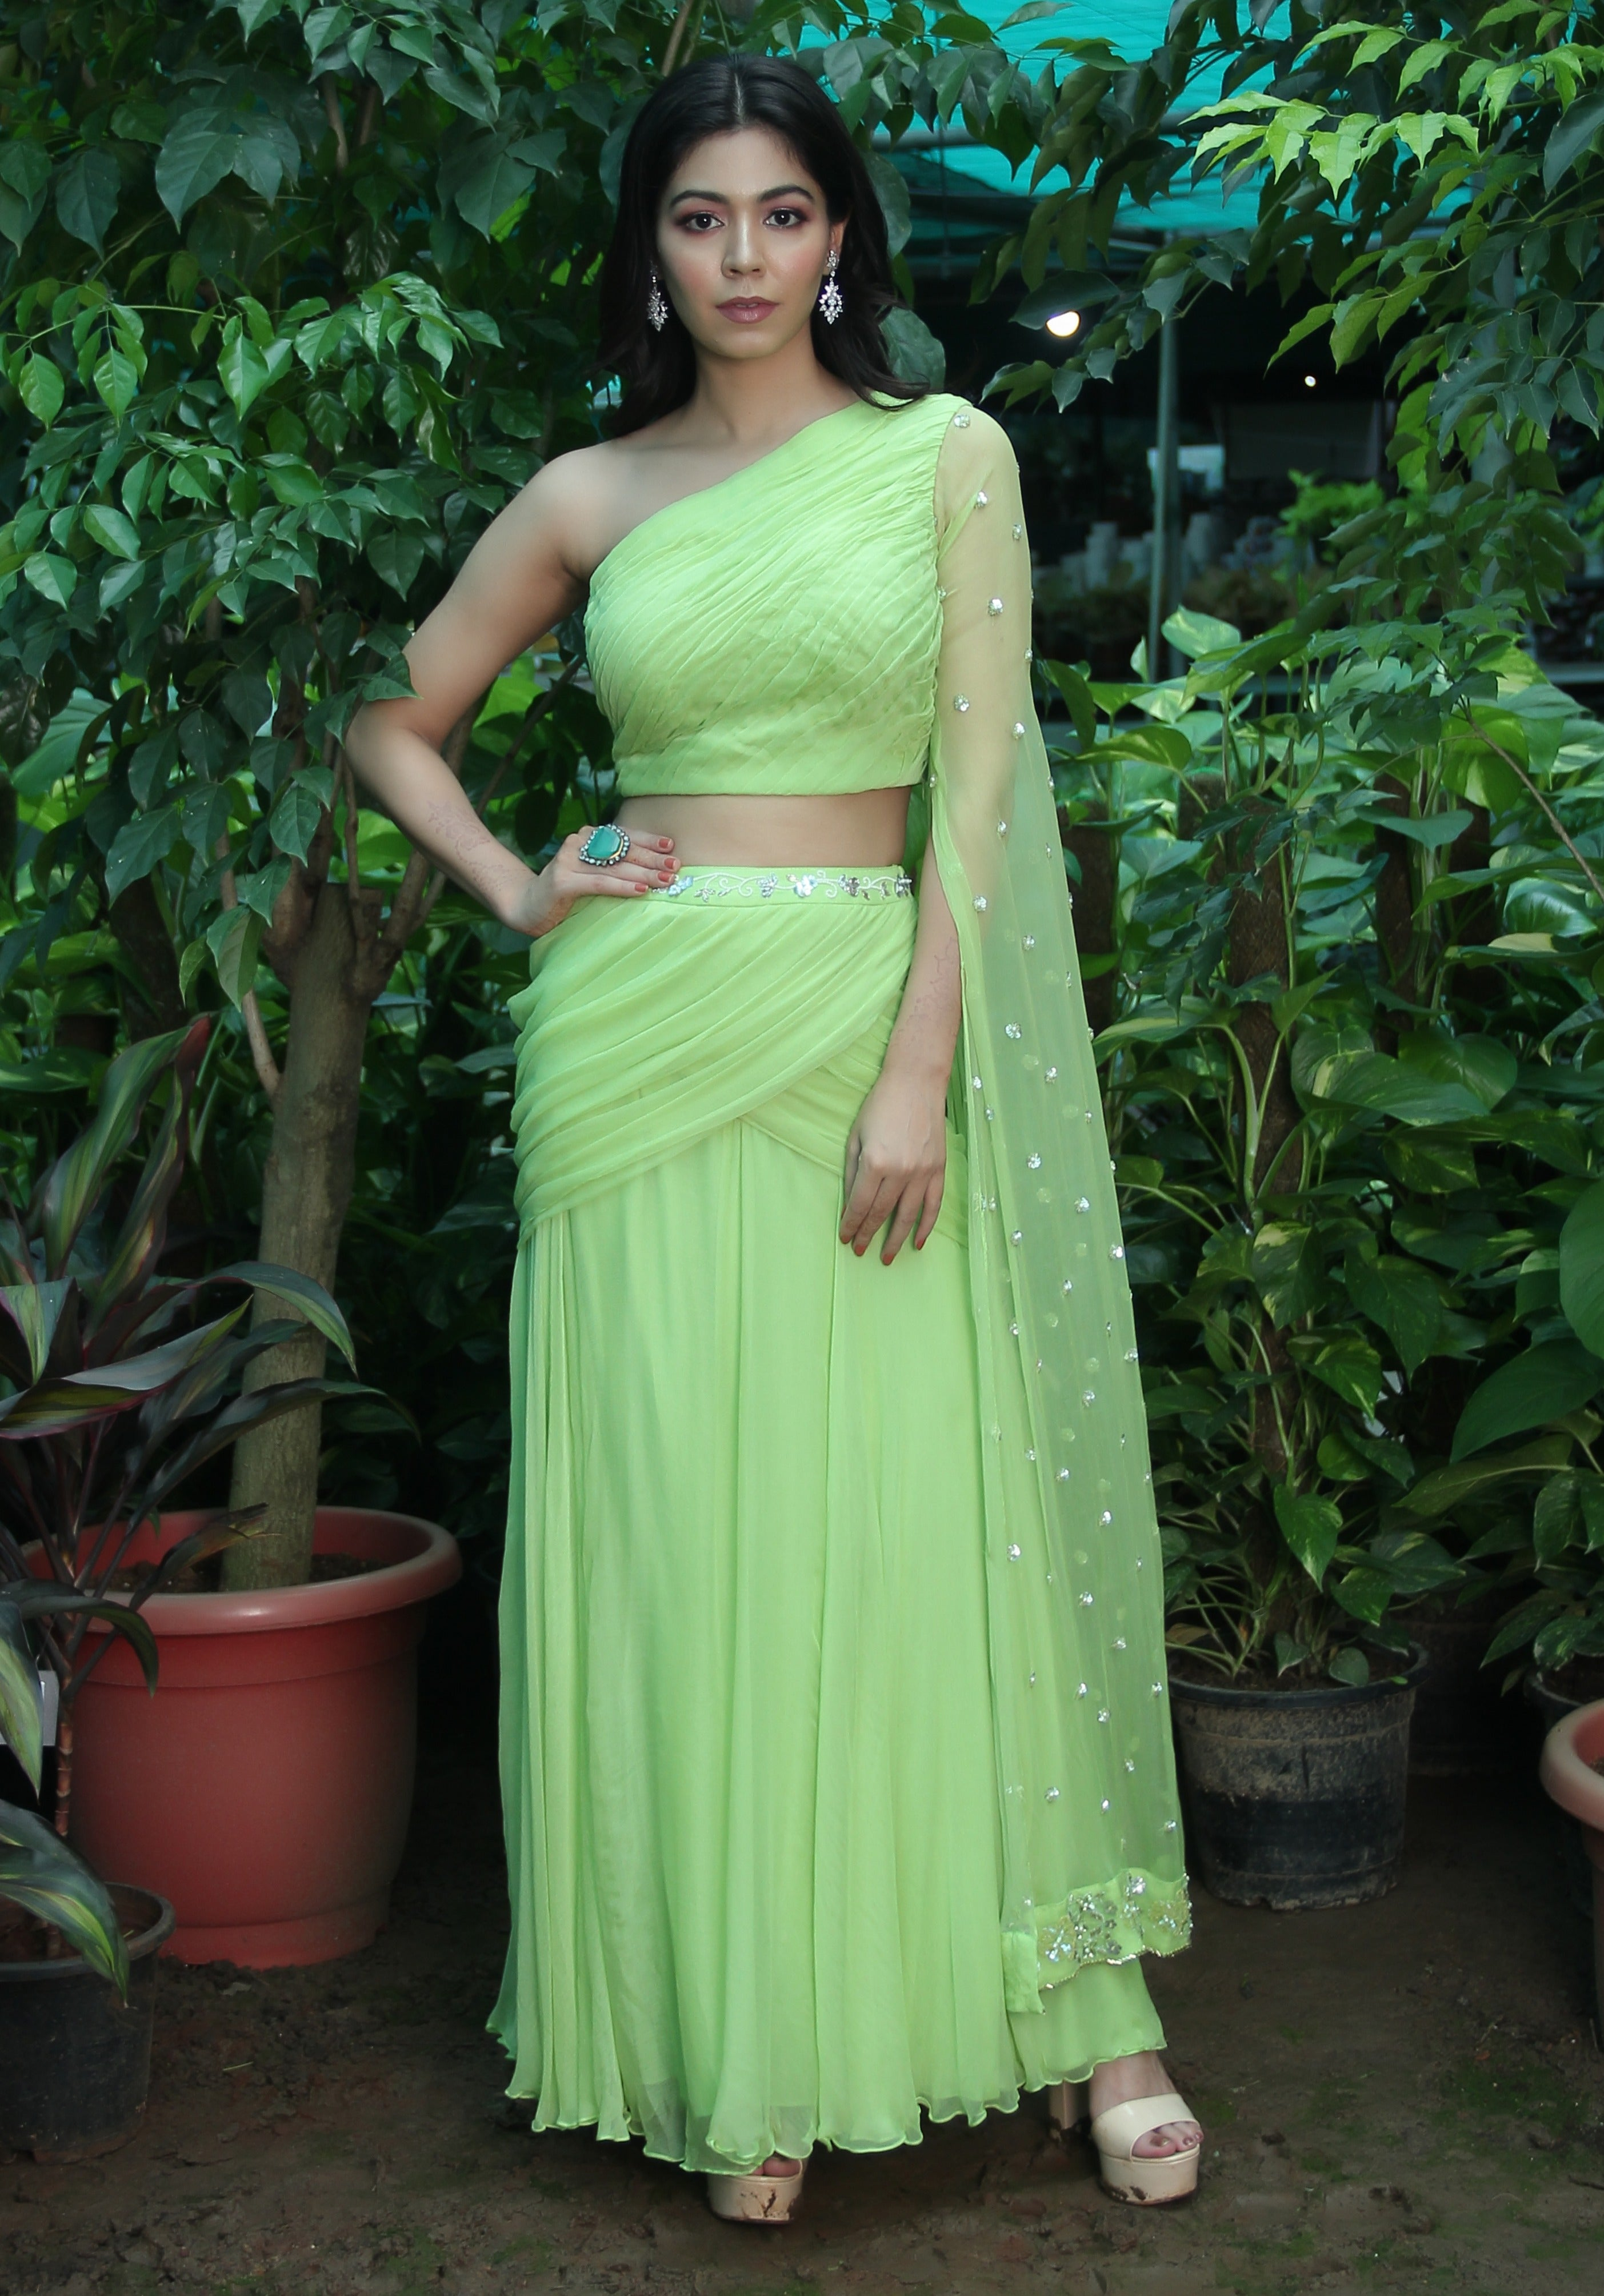 Pastel Green Draped Skirt with Top